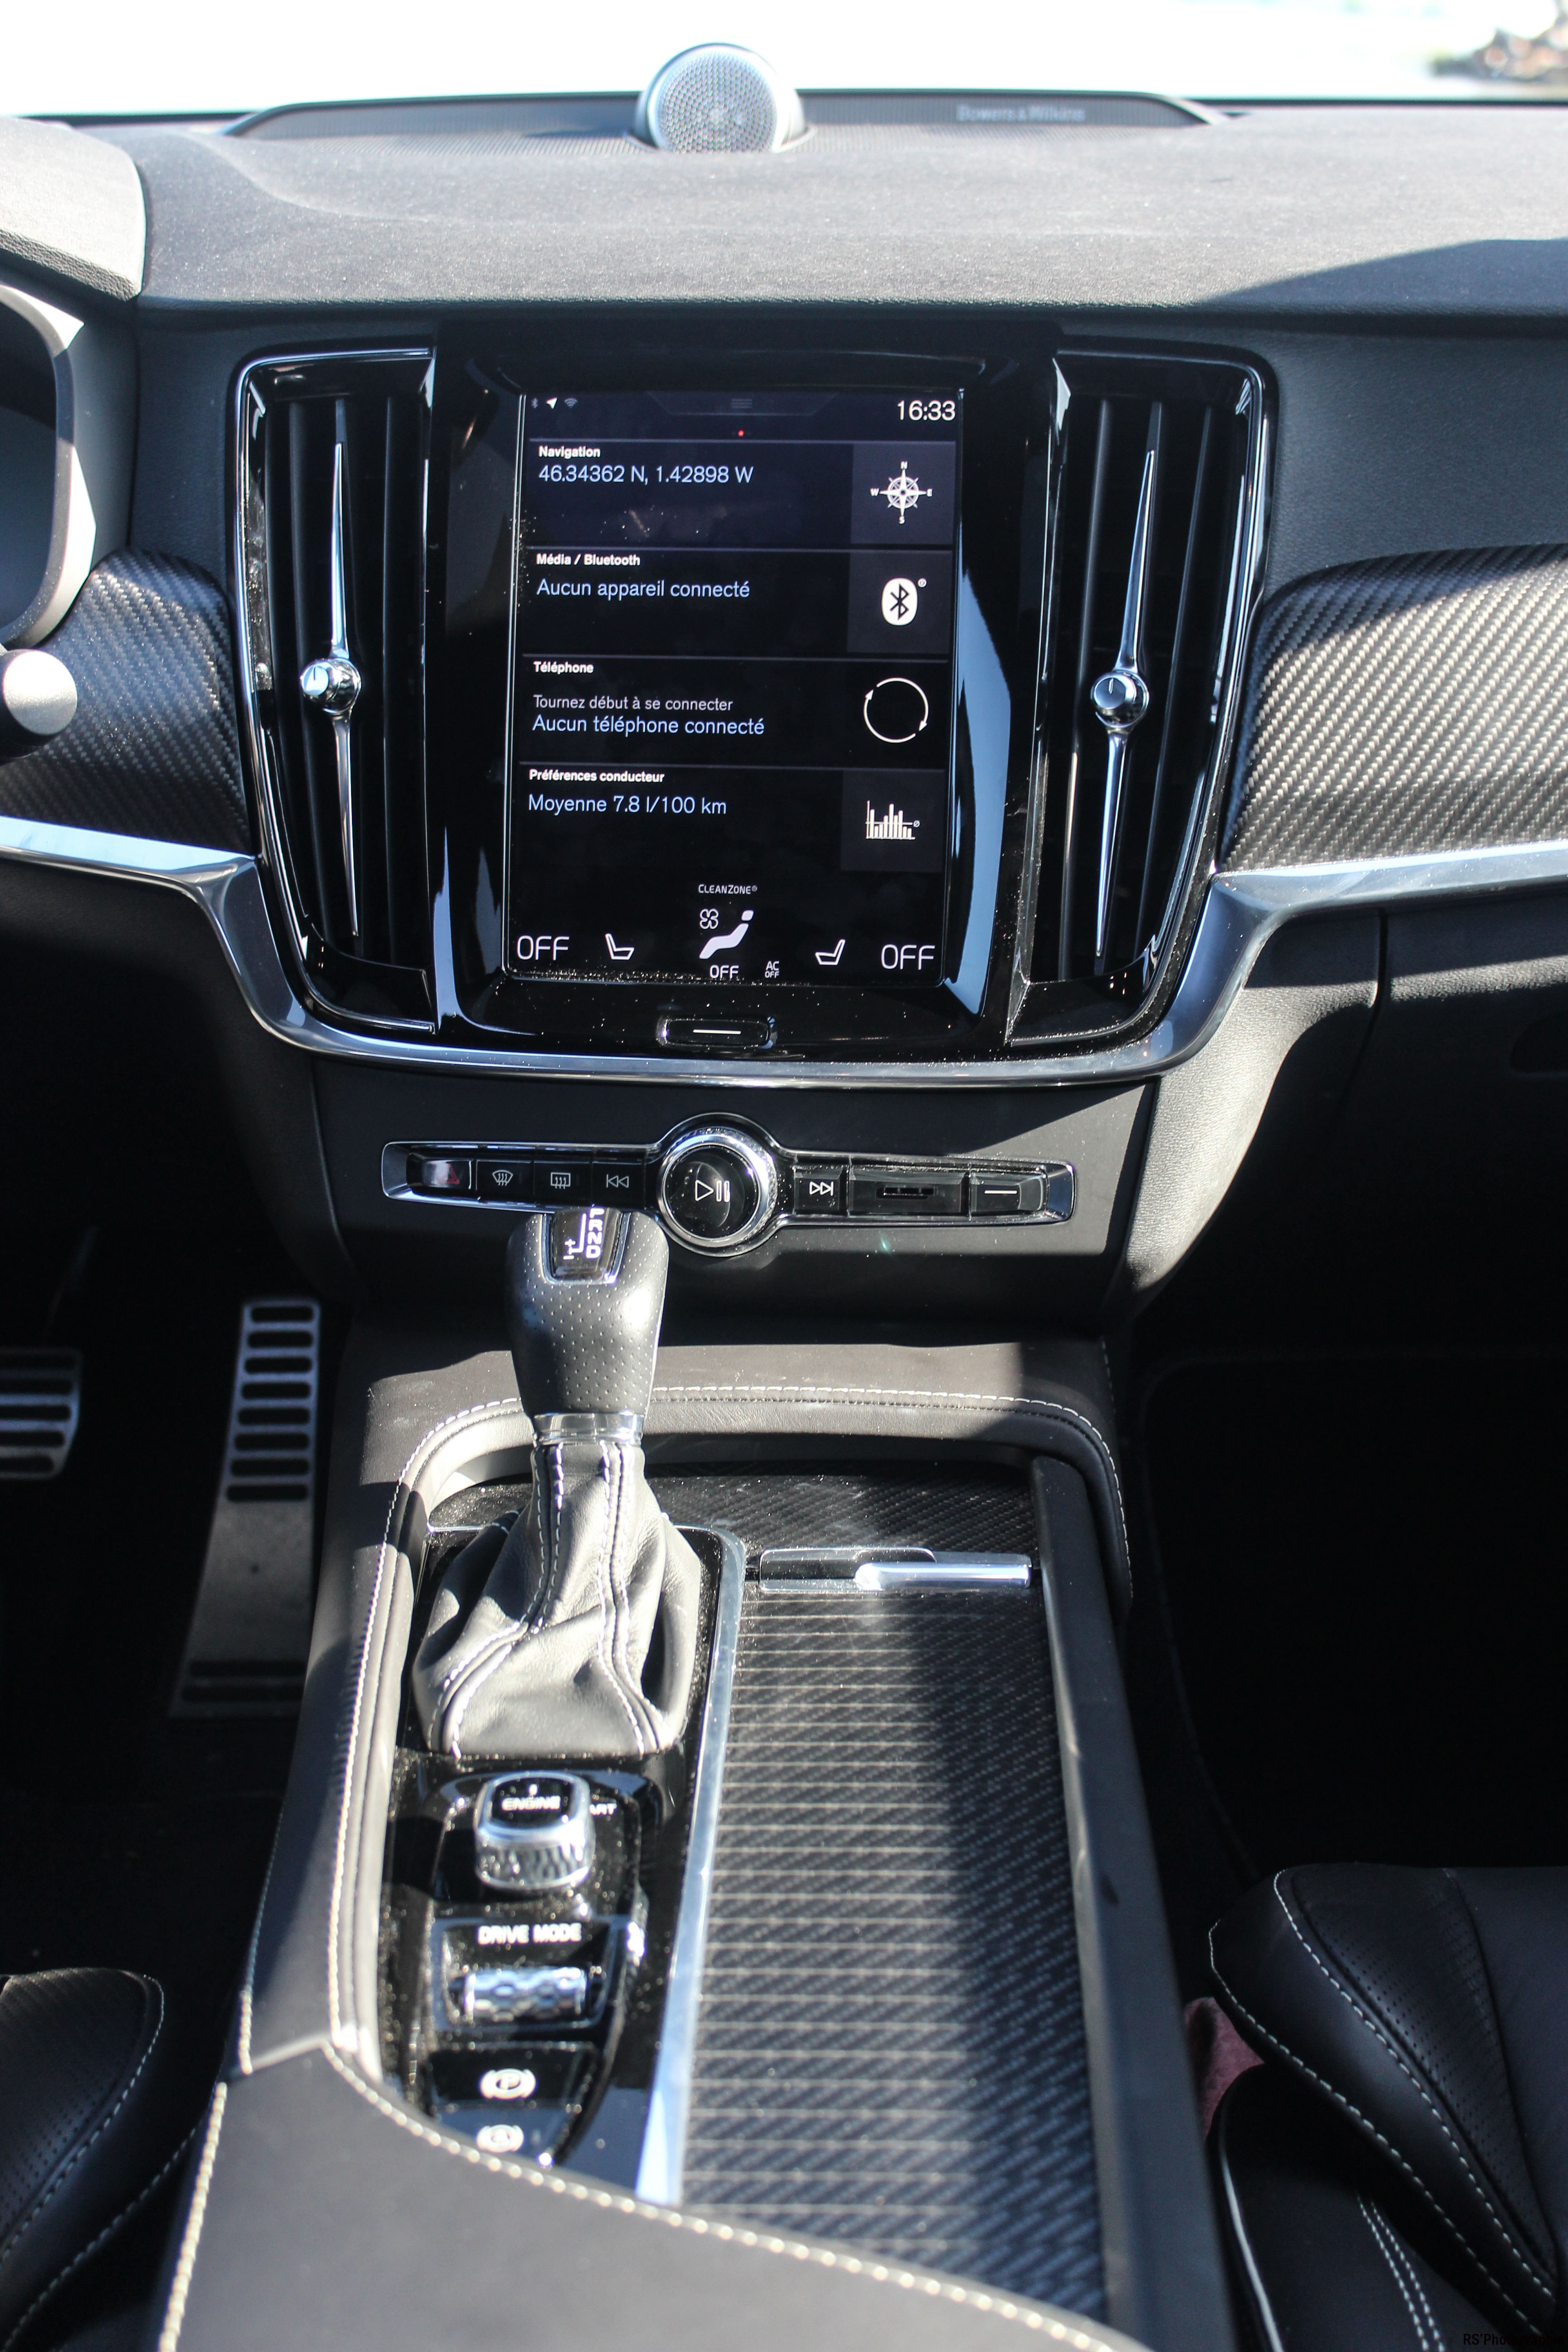 volvos9028-volvo-s90-d3-intérieur-onboard-Arnaud Demasier-RSPhotographie